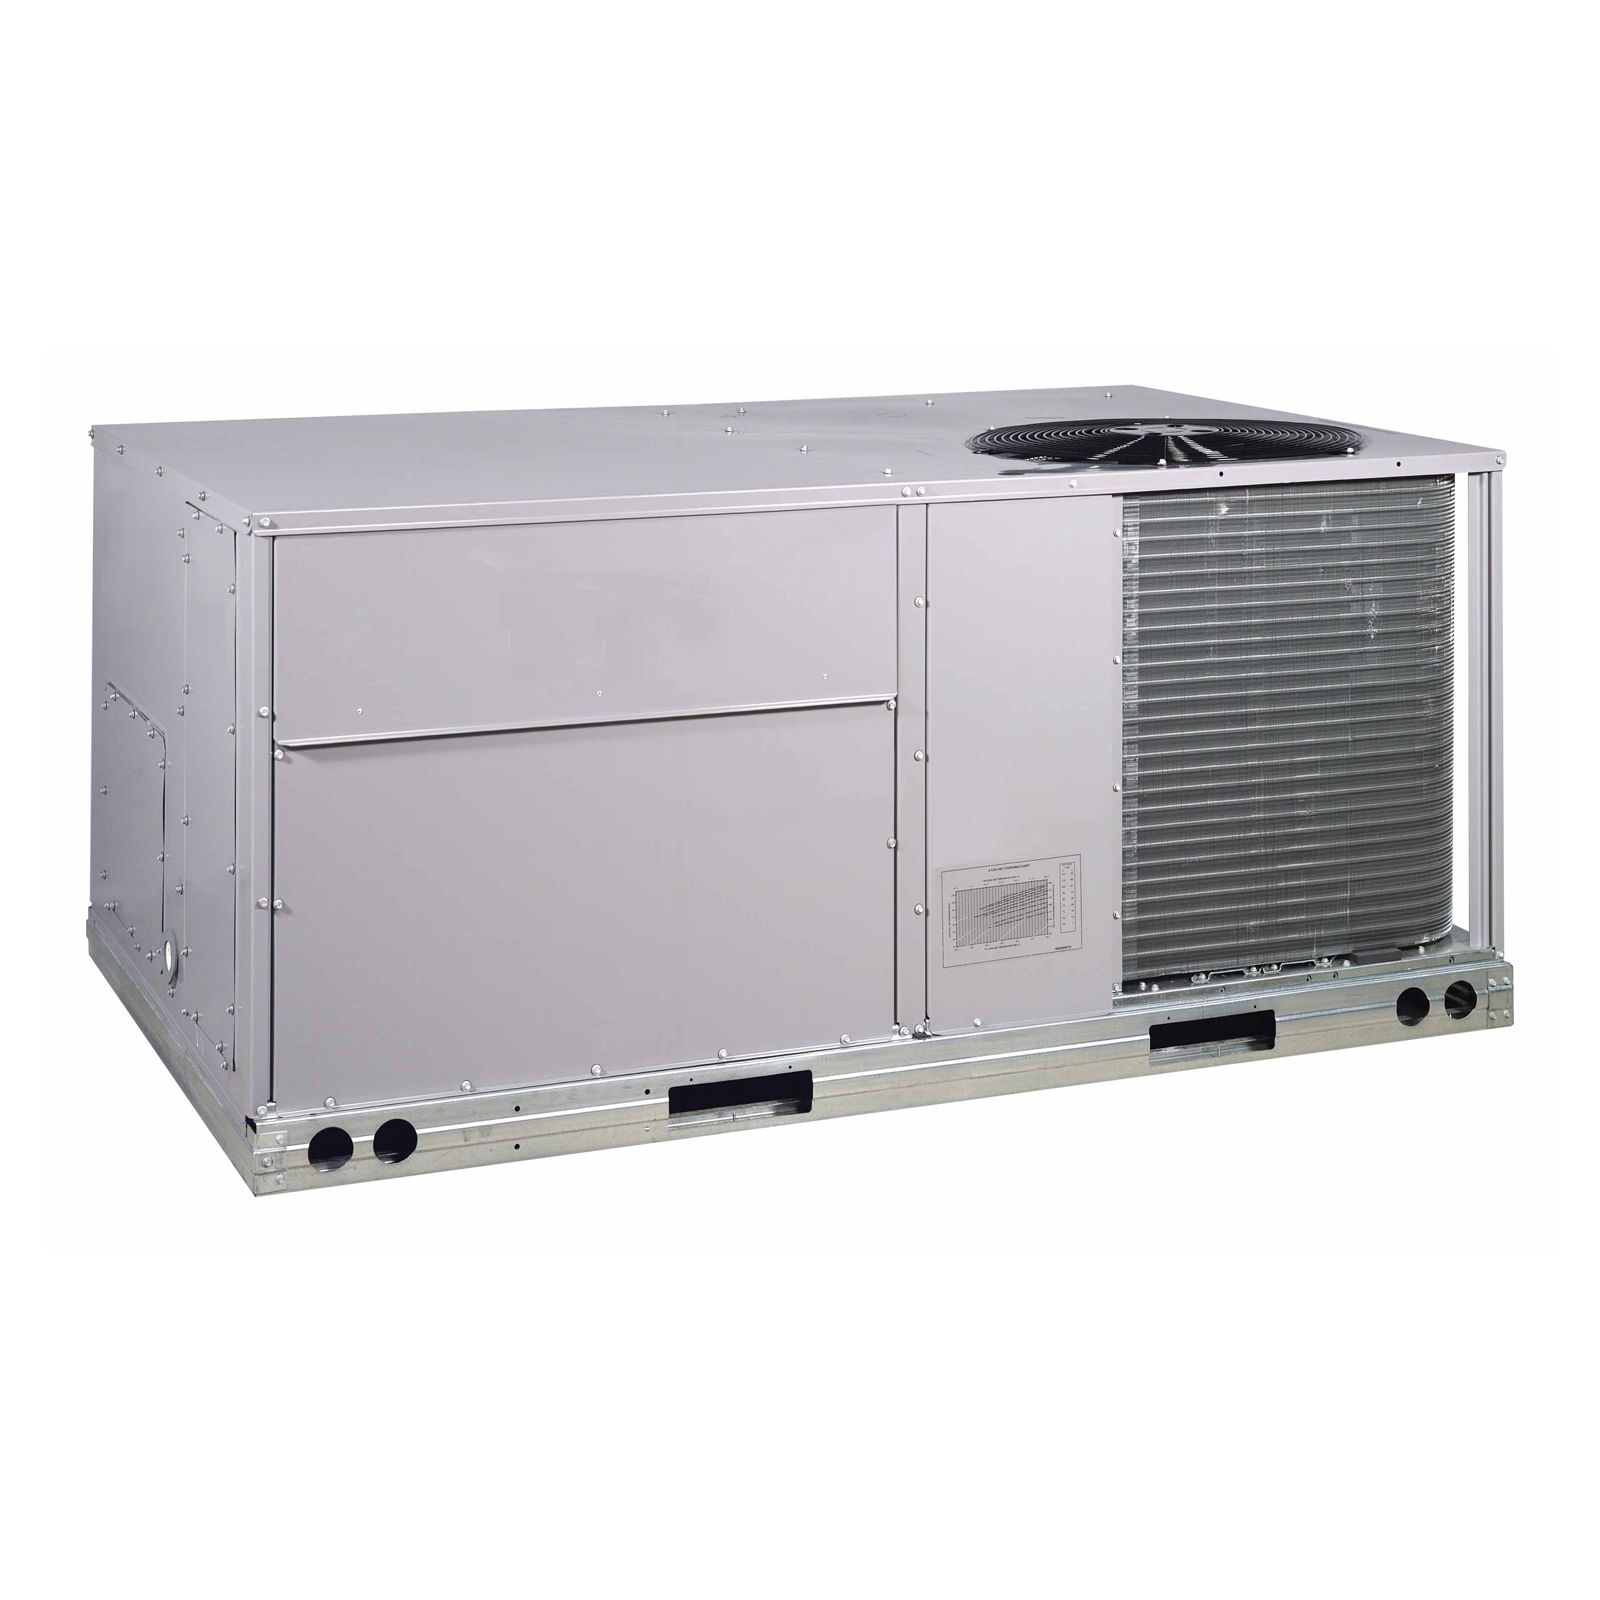 Tempstar RAX060K0CA0AAA - 5 Ton, 14.1 SEER, 12.0 EER, R410A Packaged Rooftop, 208-230V, 1 Phase, Medium Static Motor